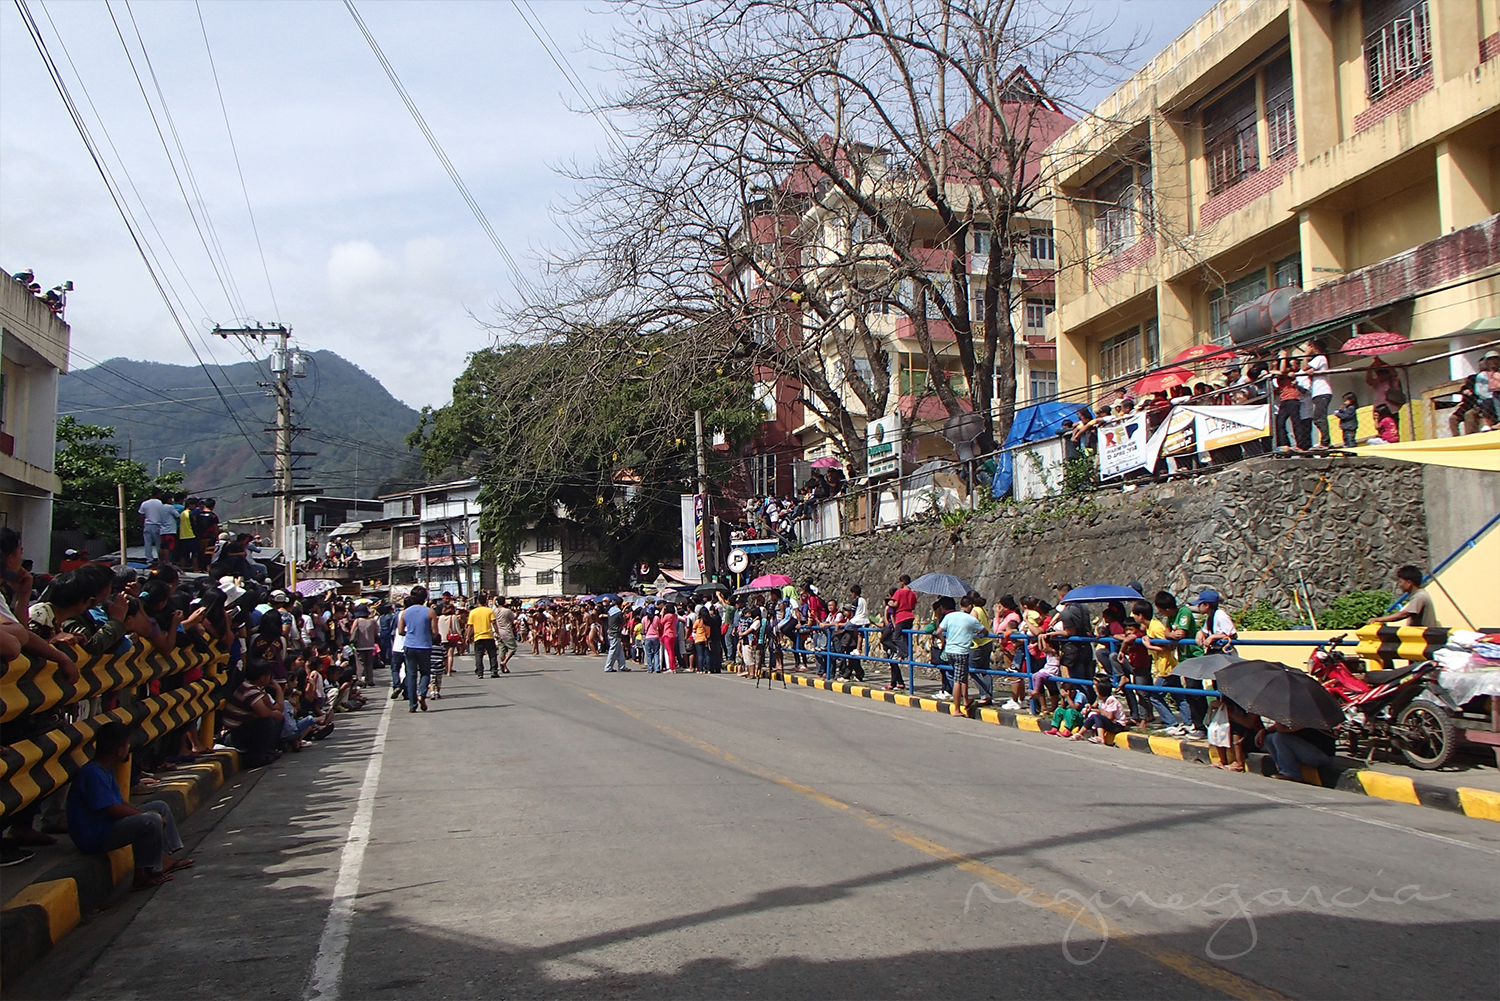 A busy morning in the streets Bontoc, Mountain Province.